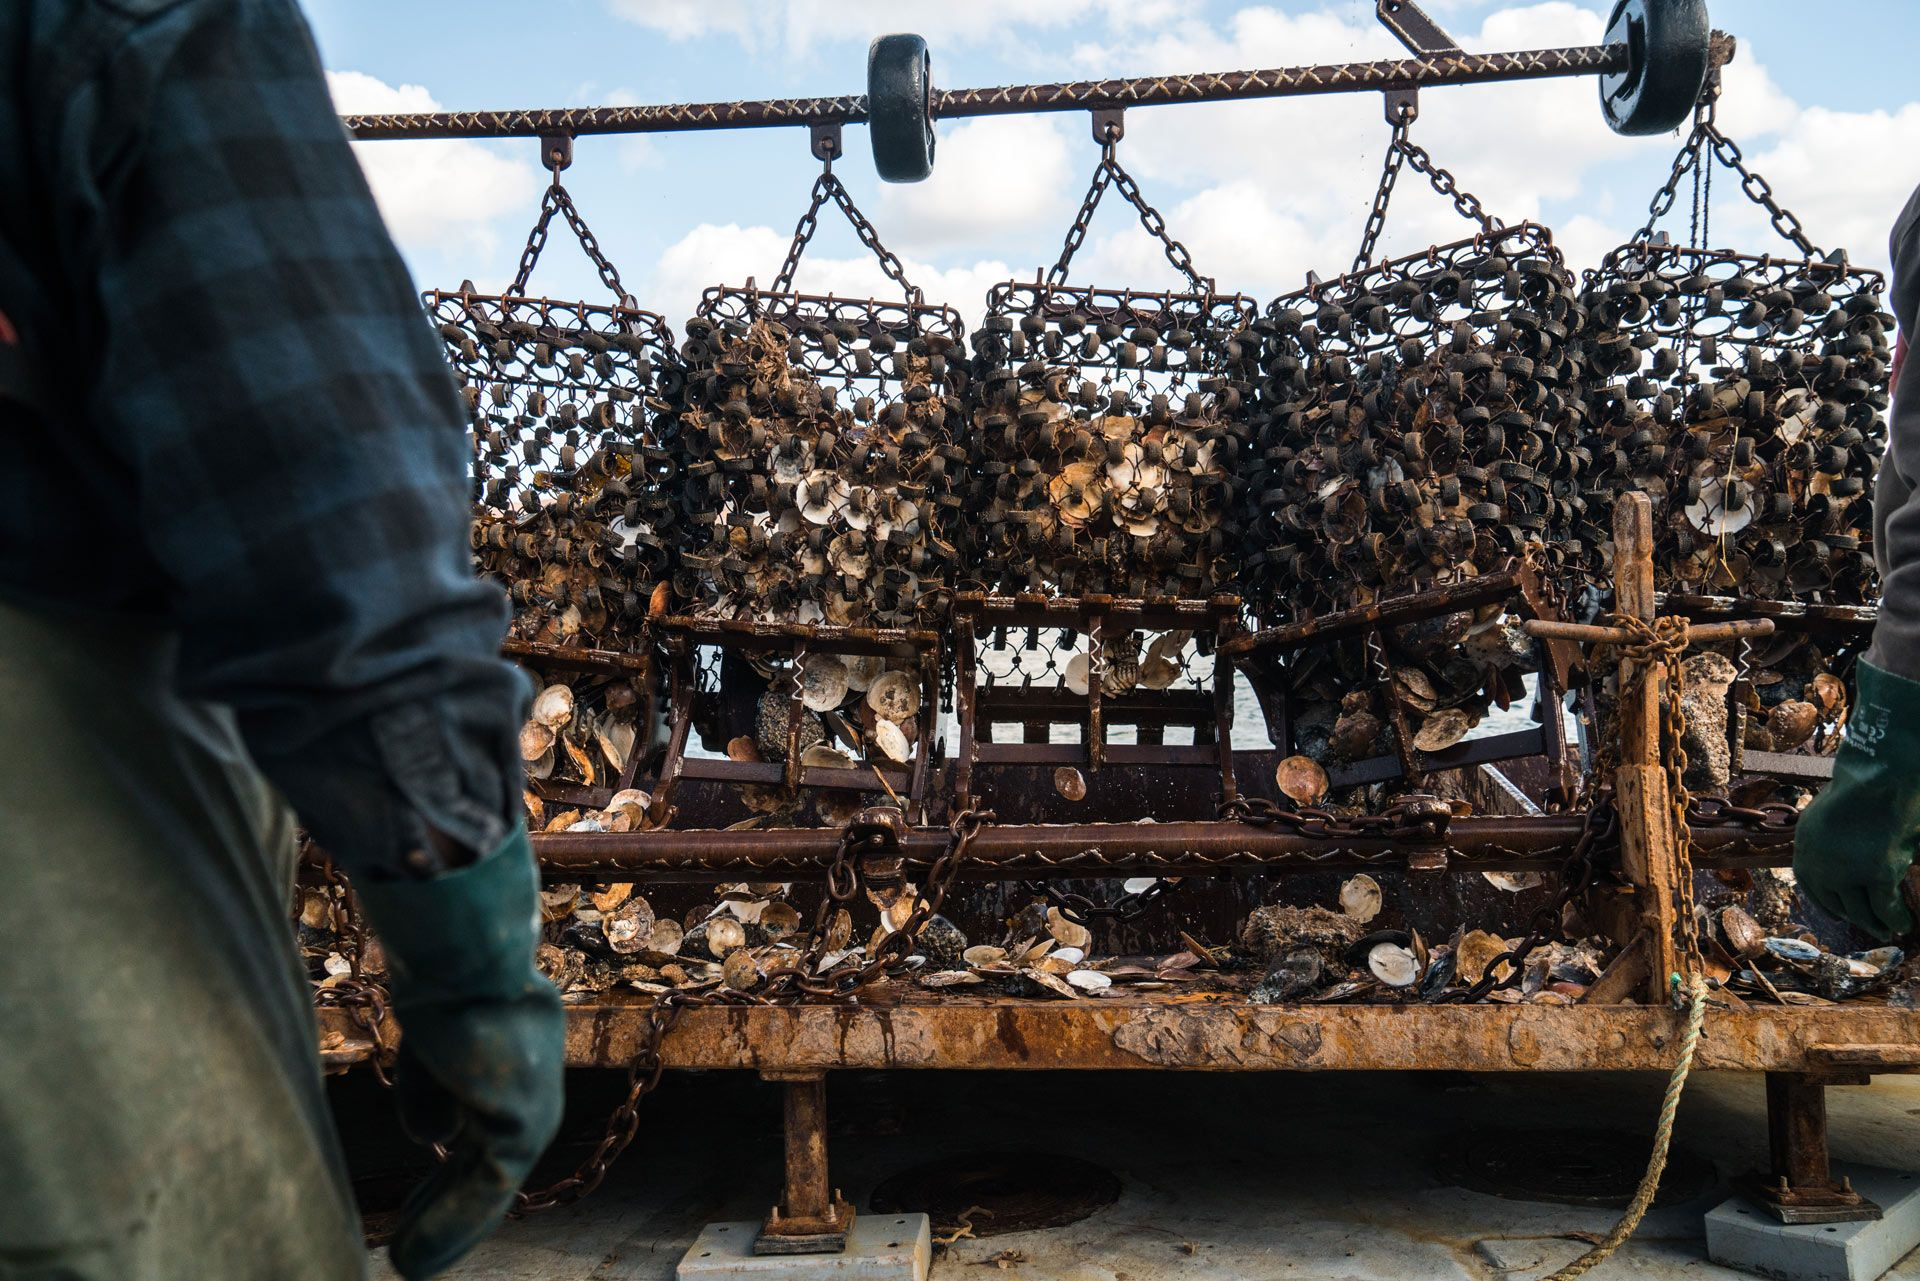 metal baskets full of freshly caught scallops by Bruno Florin for Ricardo Magazine in Bay of Fundy